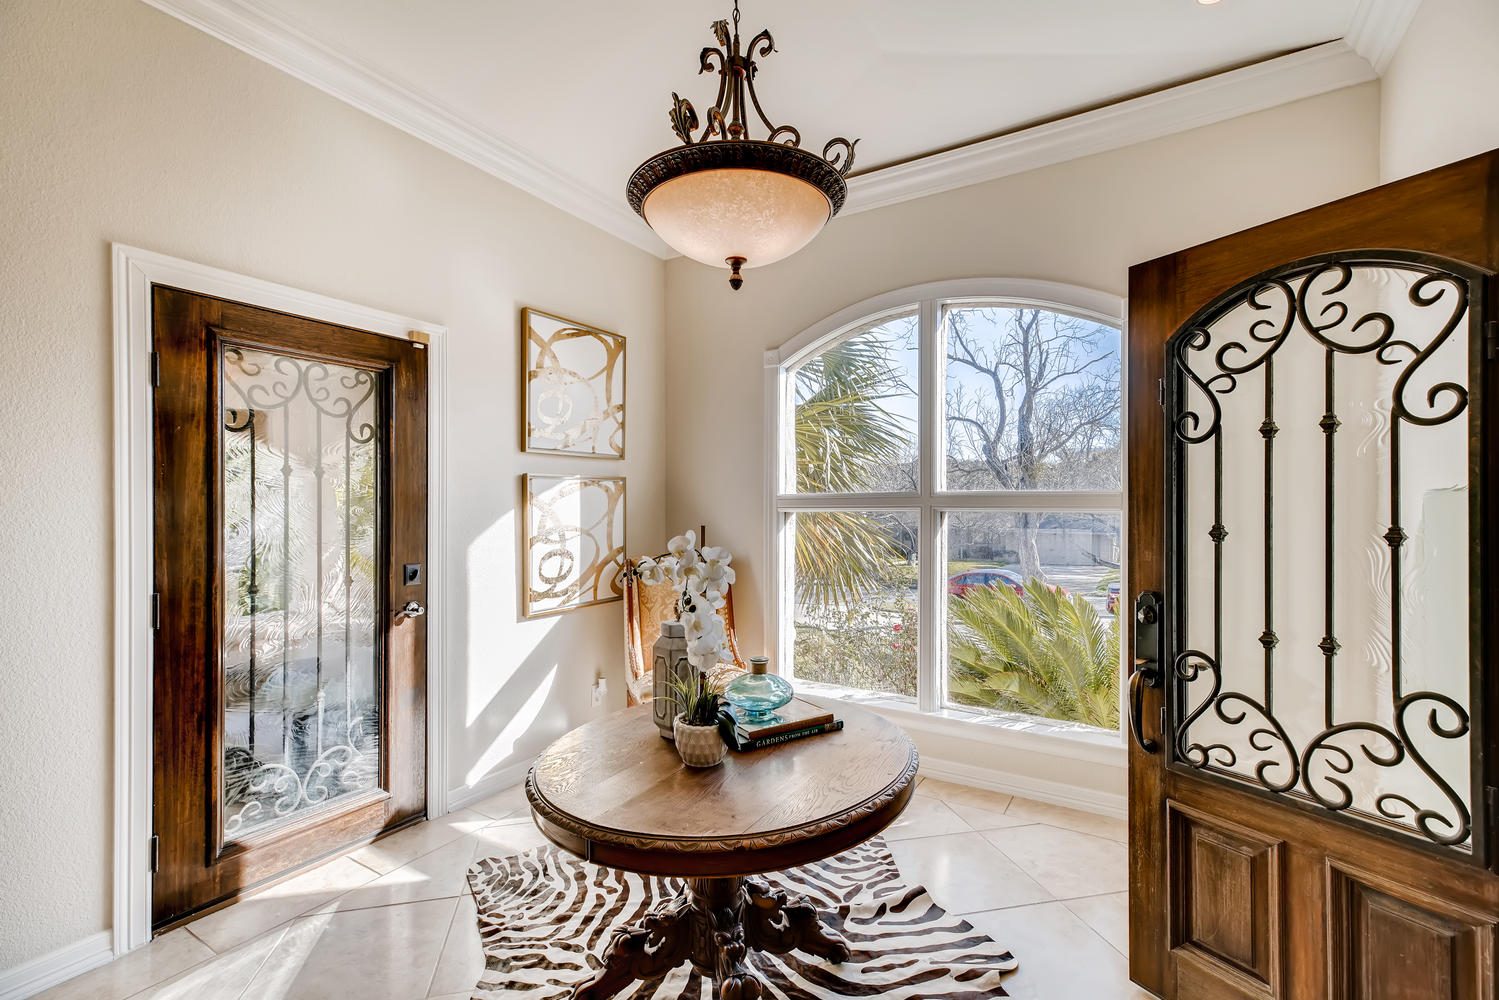 Full home staging in Las Vegas, Nevada, featuring an entry way